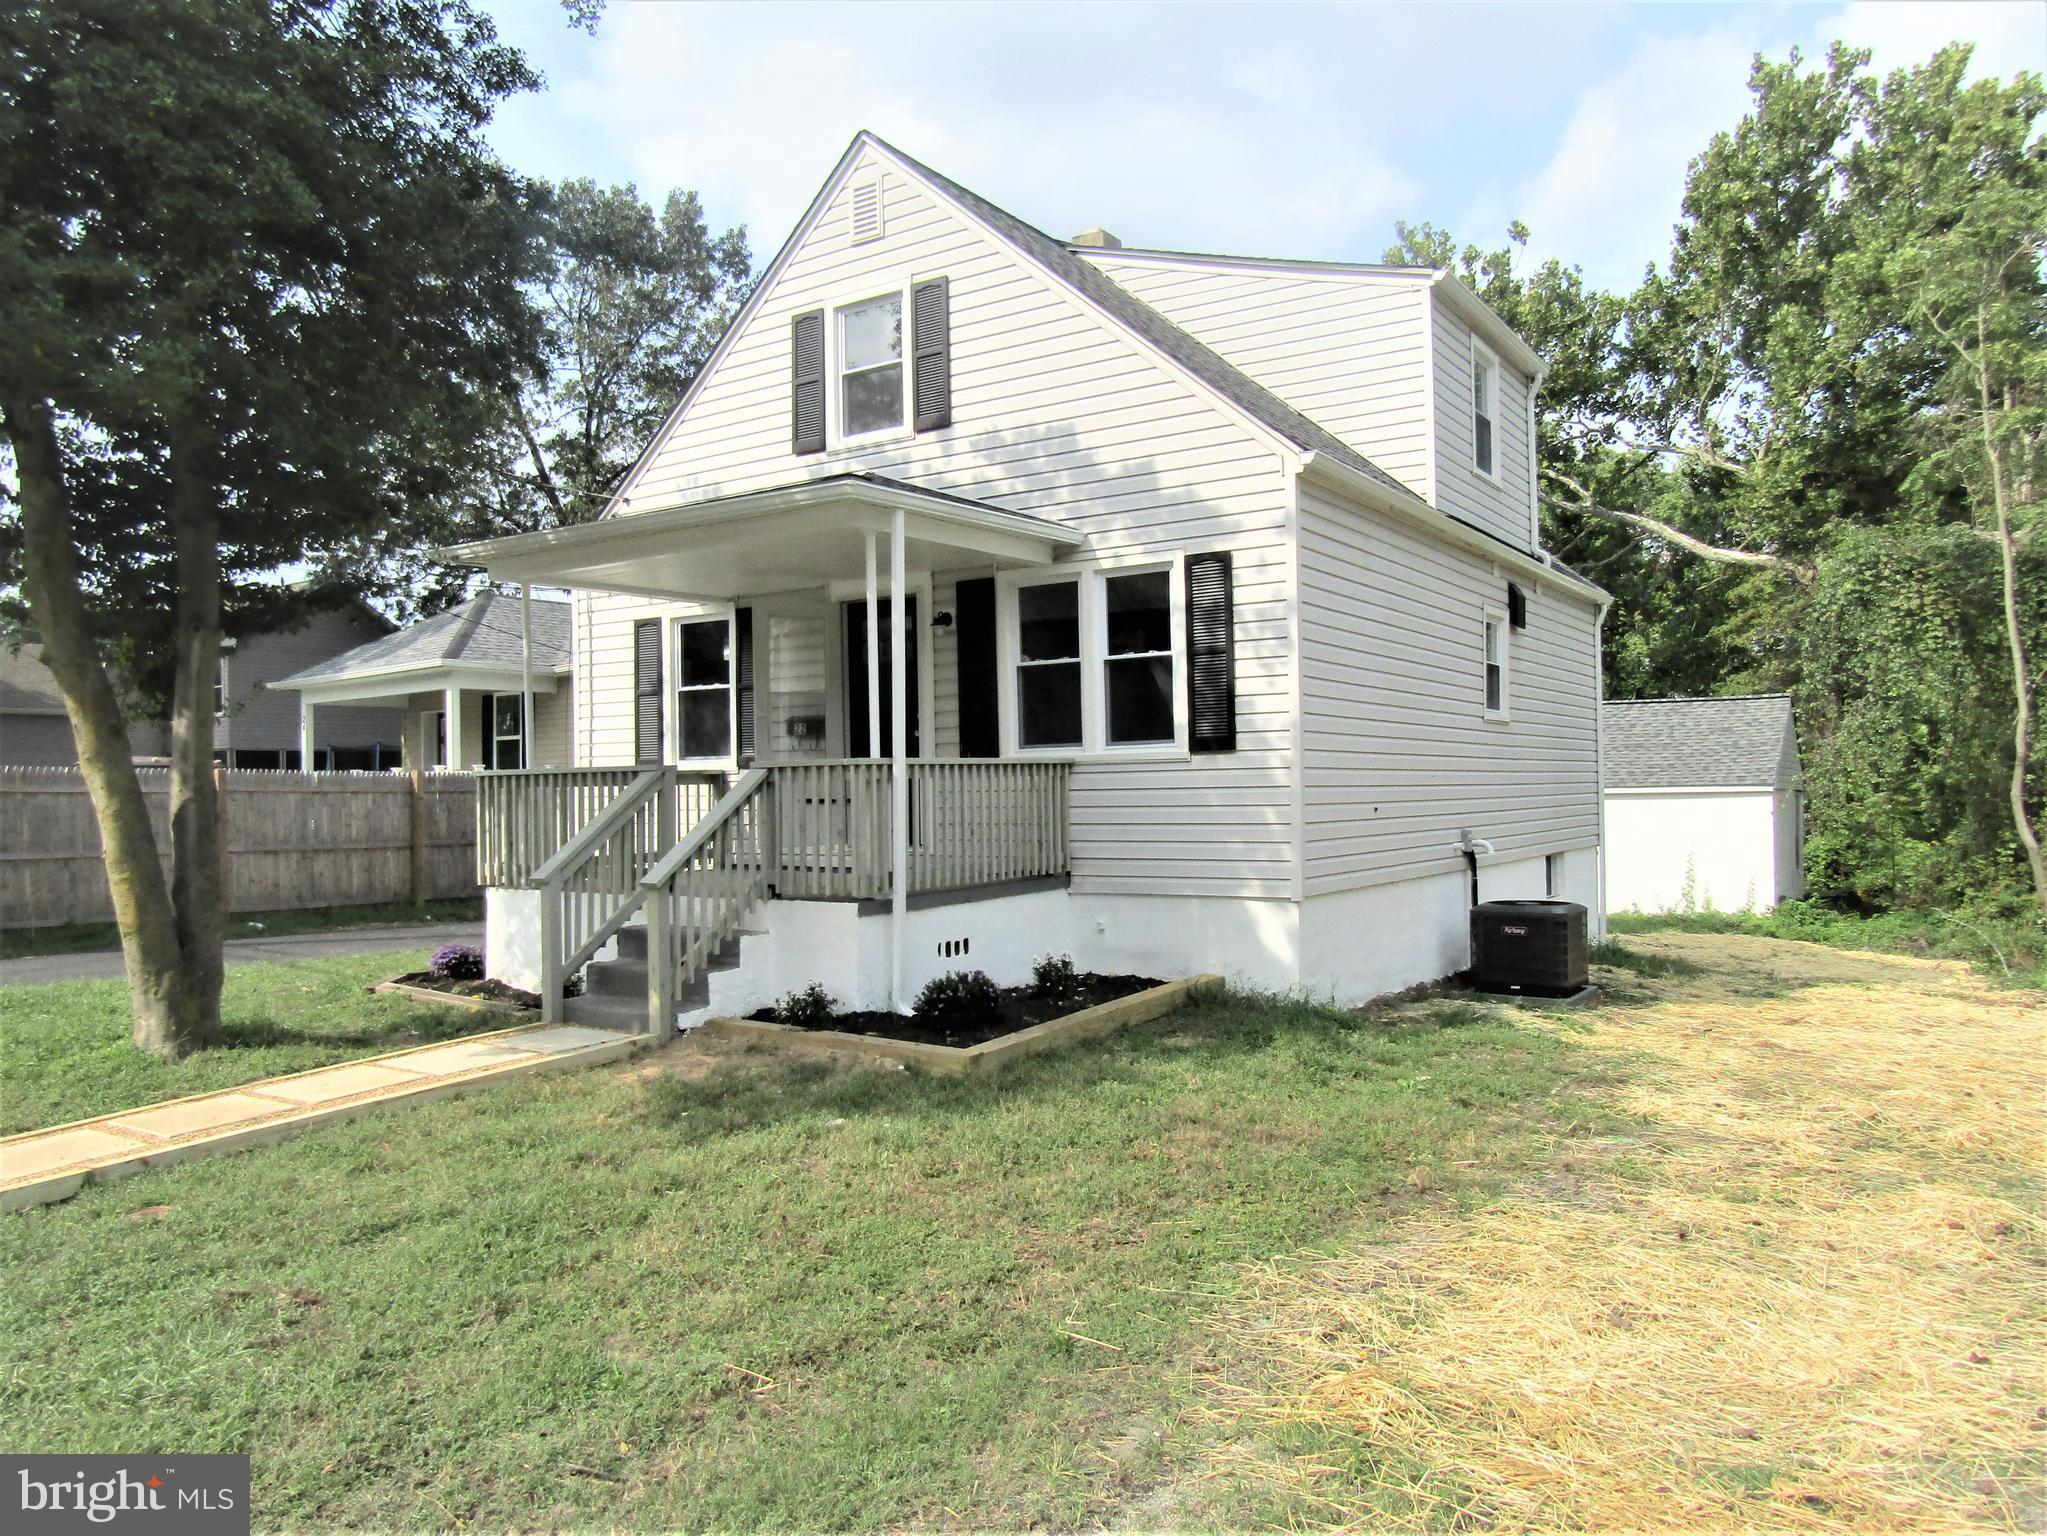 Beautifully Renovated Cape Cod in Historic Glen Burnie! Over 1600 sq ft of Finished Living Space on